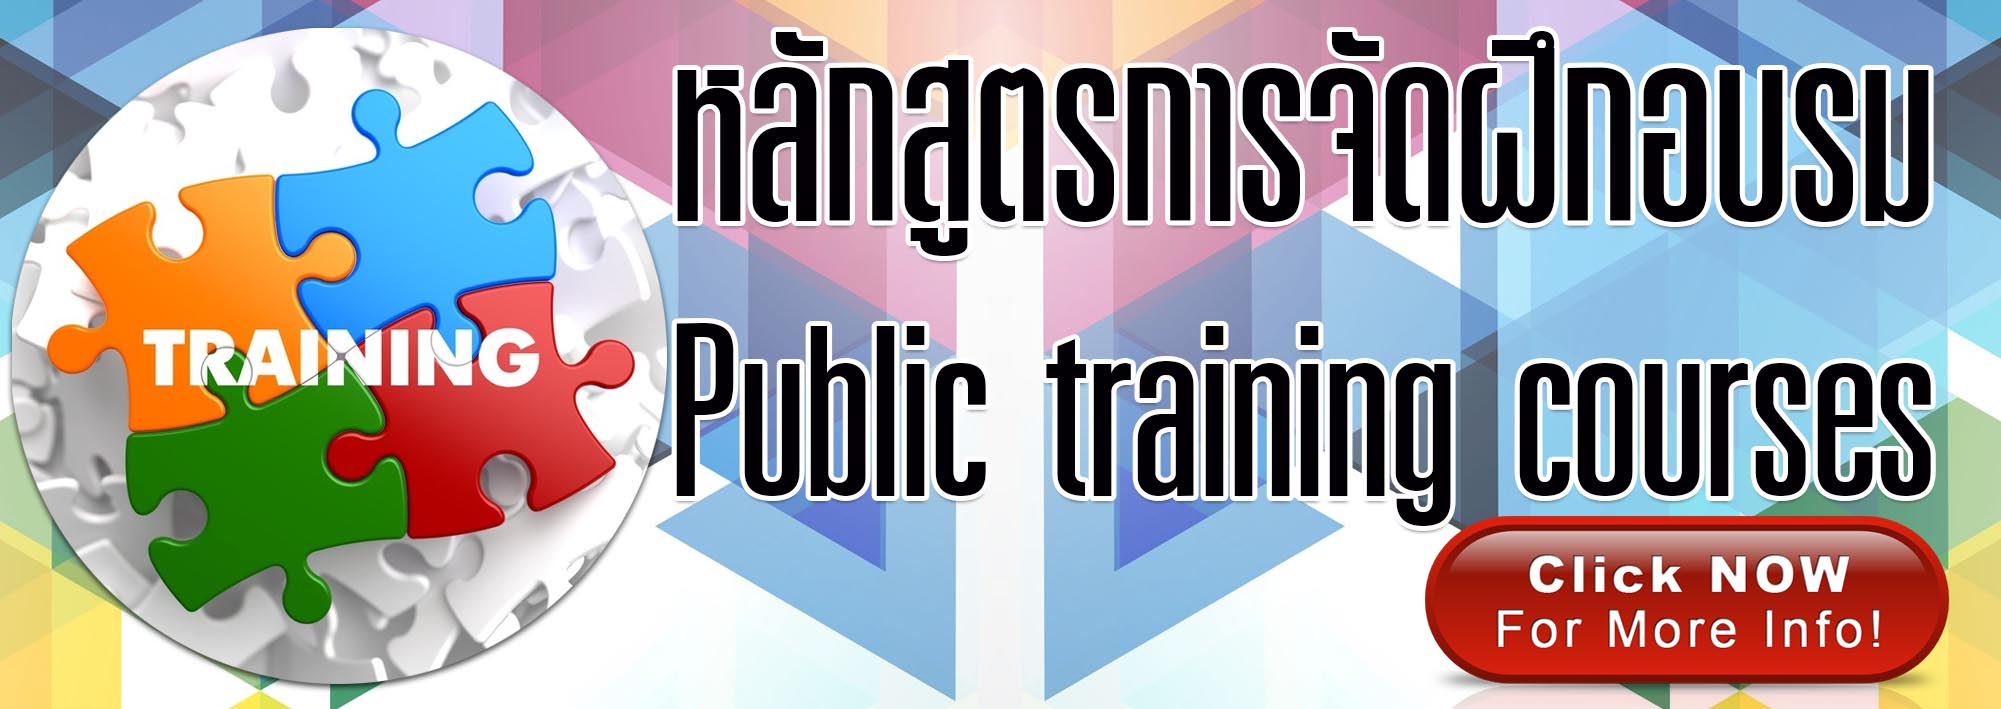 Public_training_course